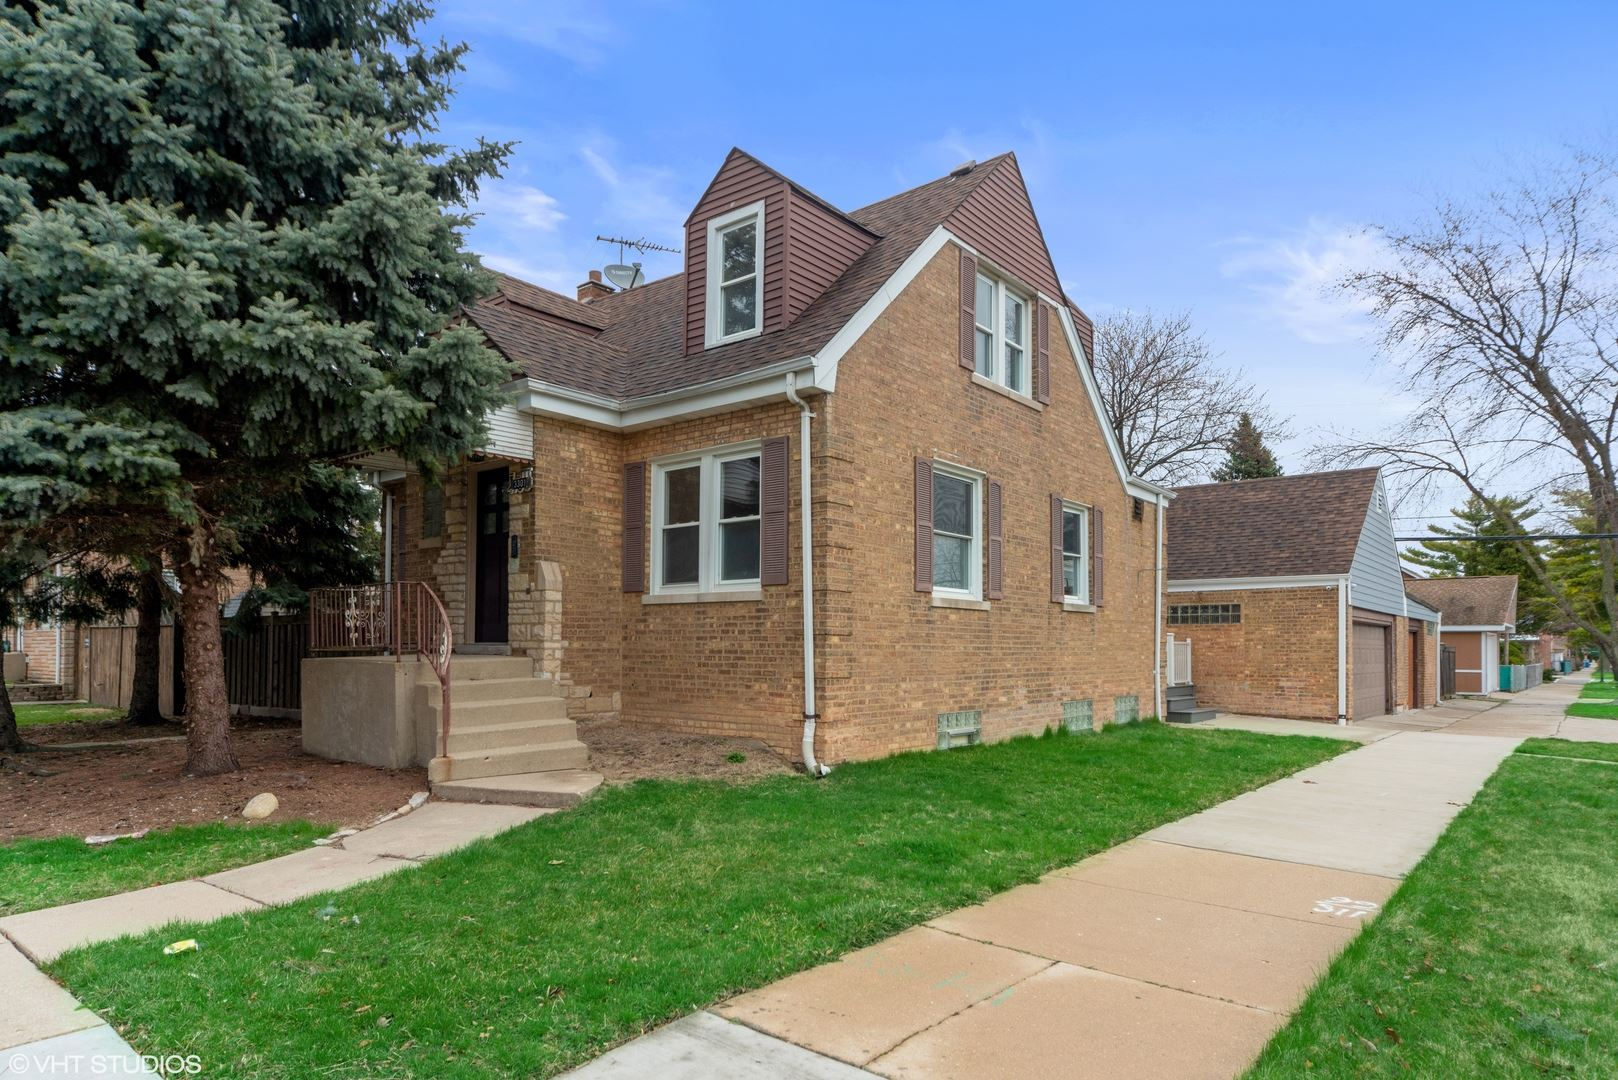 3301 N Oleander Avenue, Chicago, IL 60634 - #: 10683290